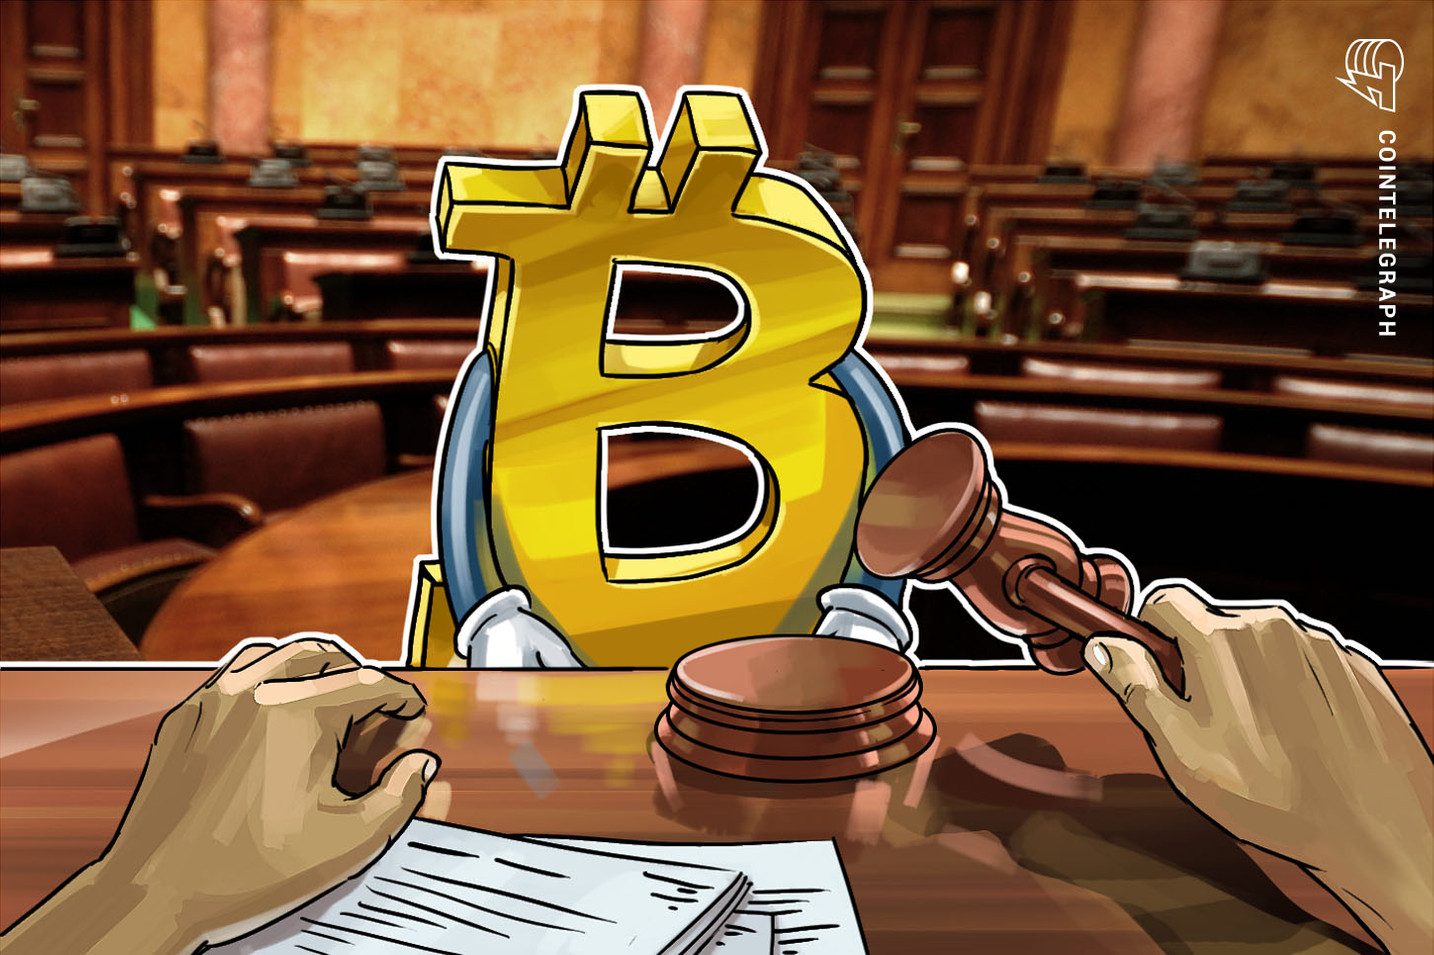 Greek Court Rules to Extradite Alexander Vinnik, Accused of Laundering $4 Bln in Bitcoin